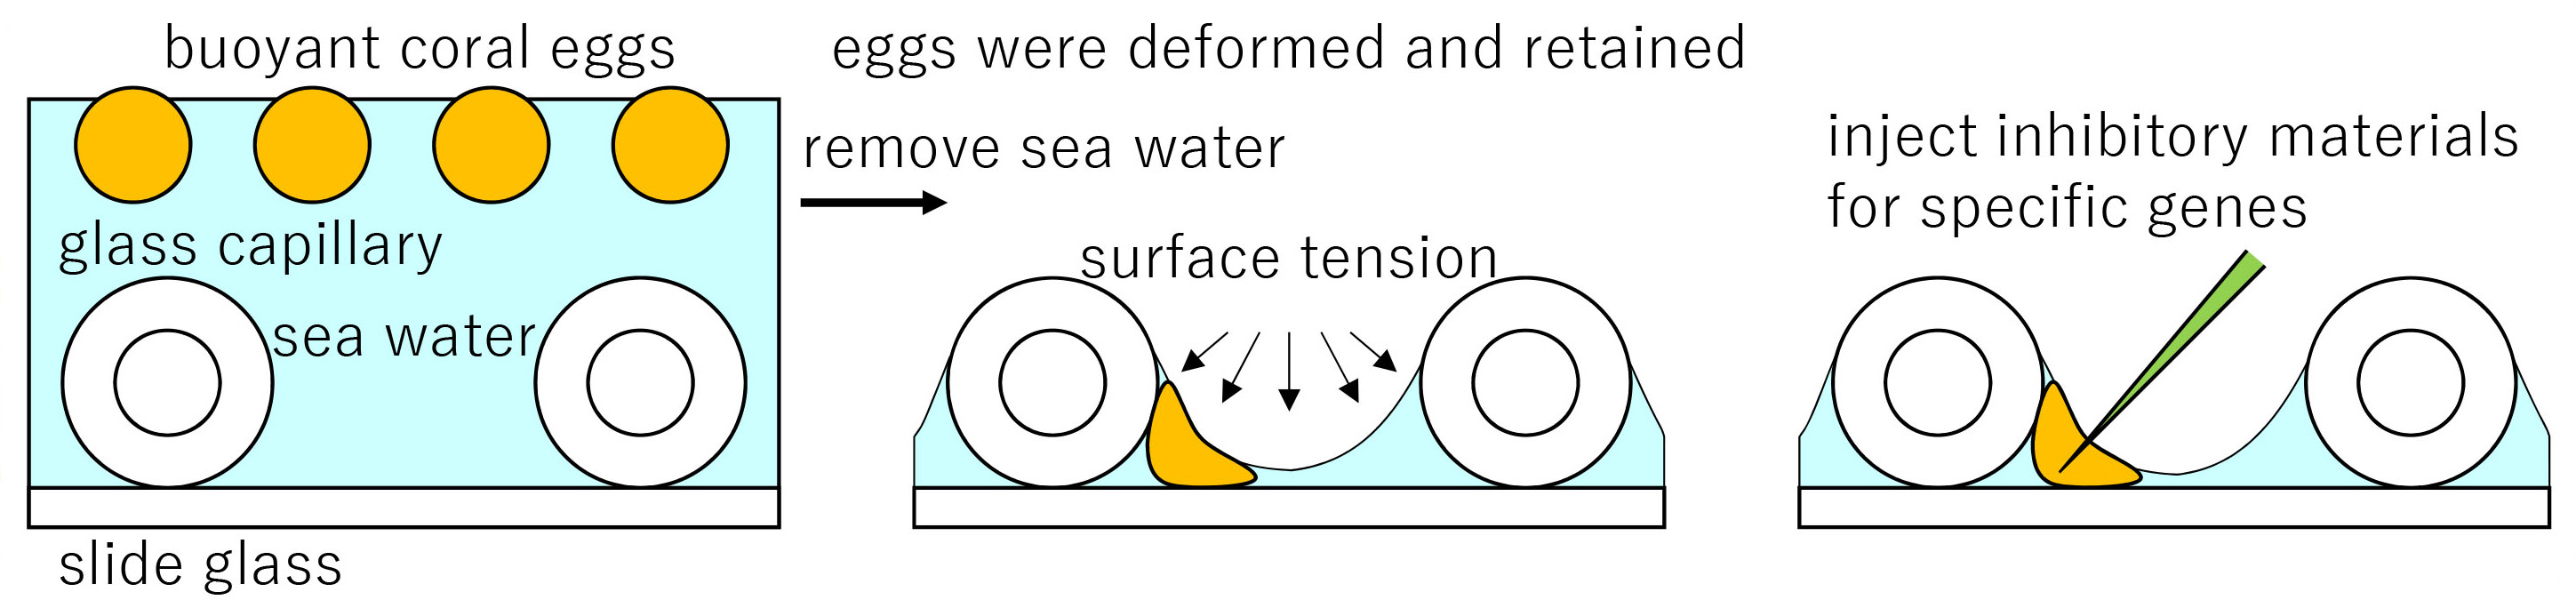 Figure 1: New technology allows for microinjection experiments using Acropora eggs. Dr. Yuuri Yasuoka developed a method to study Acropora eggs by using glass capillaries attached to a glass slide to trap the eggs when water is slowly removed. A small amount of water remains in the space between the glass pieces and immobilizes the eggs due to the surface tension of the remaining amount of water.